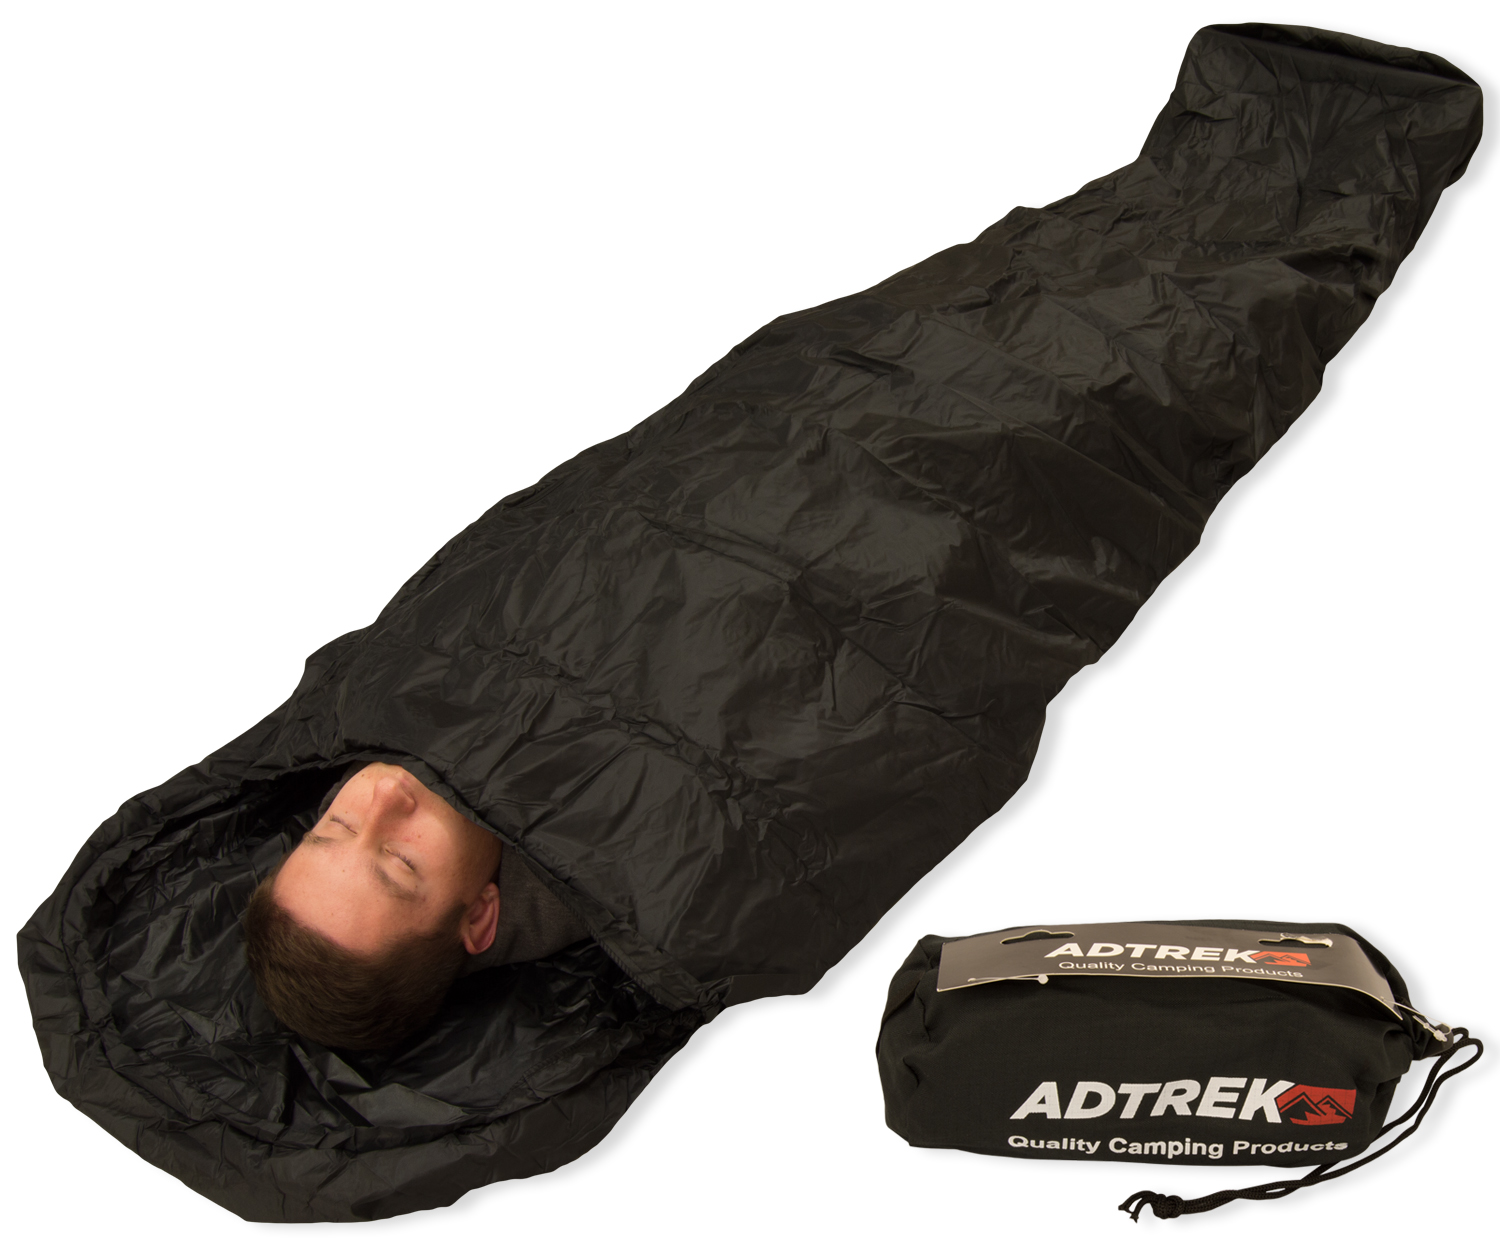 Adtrek Camping/Fishing Waterproof Sleeping Bag Bivvy Bag ...